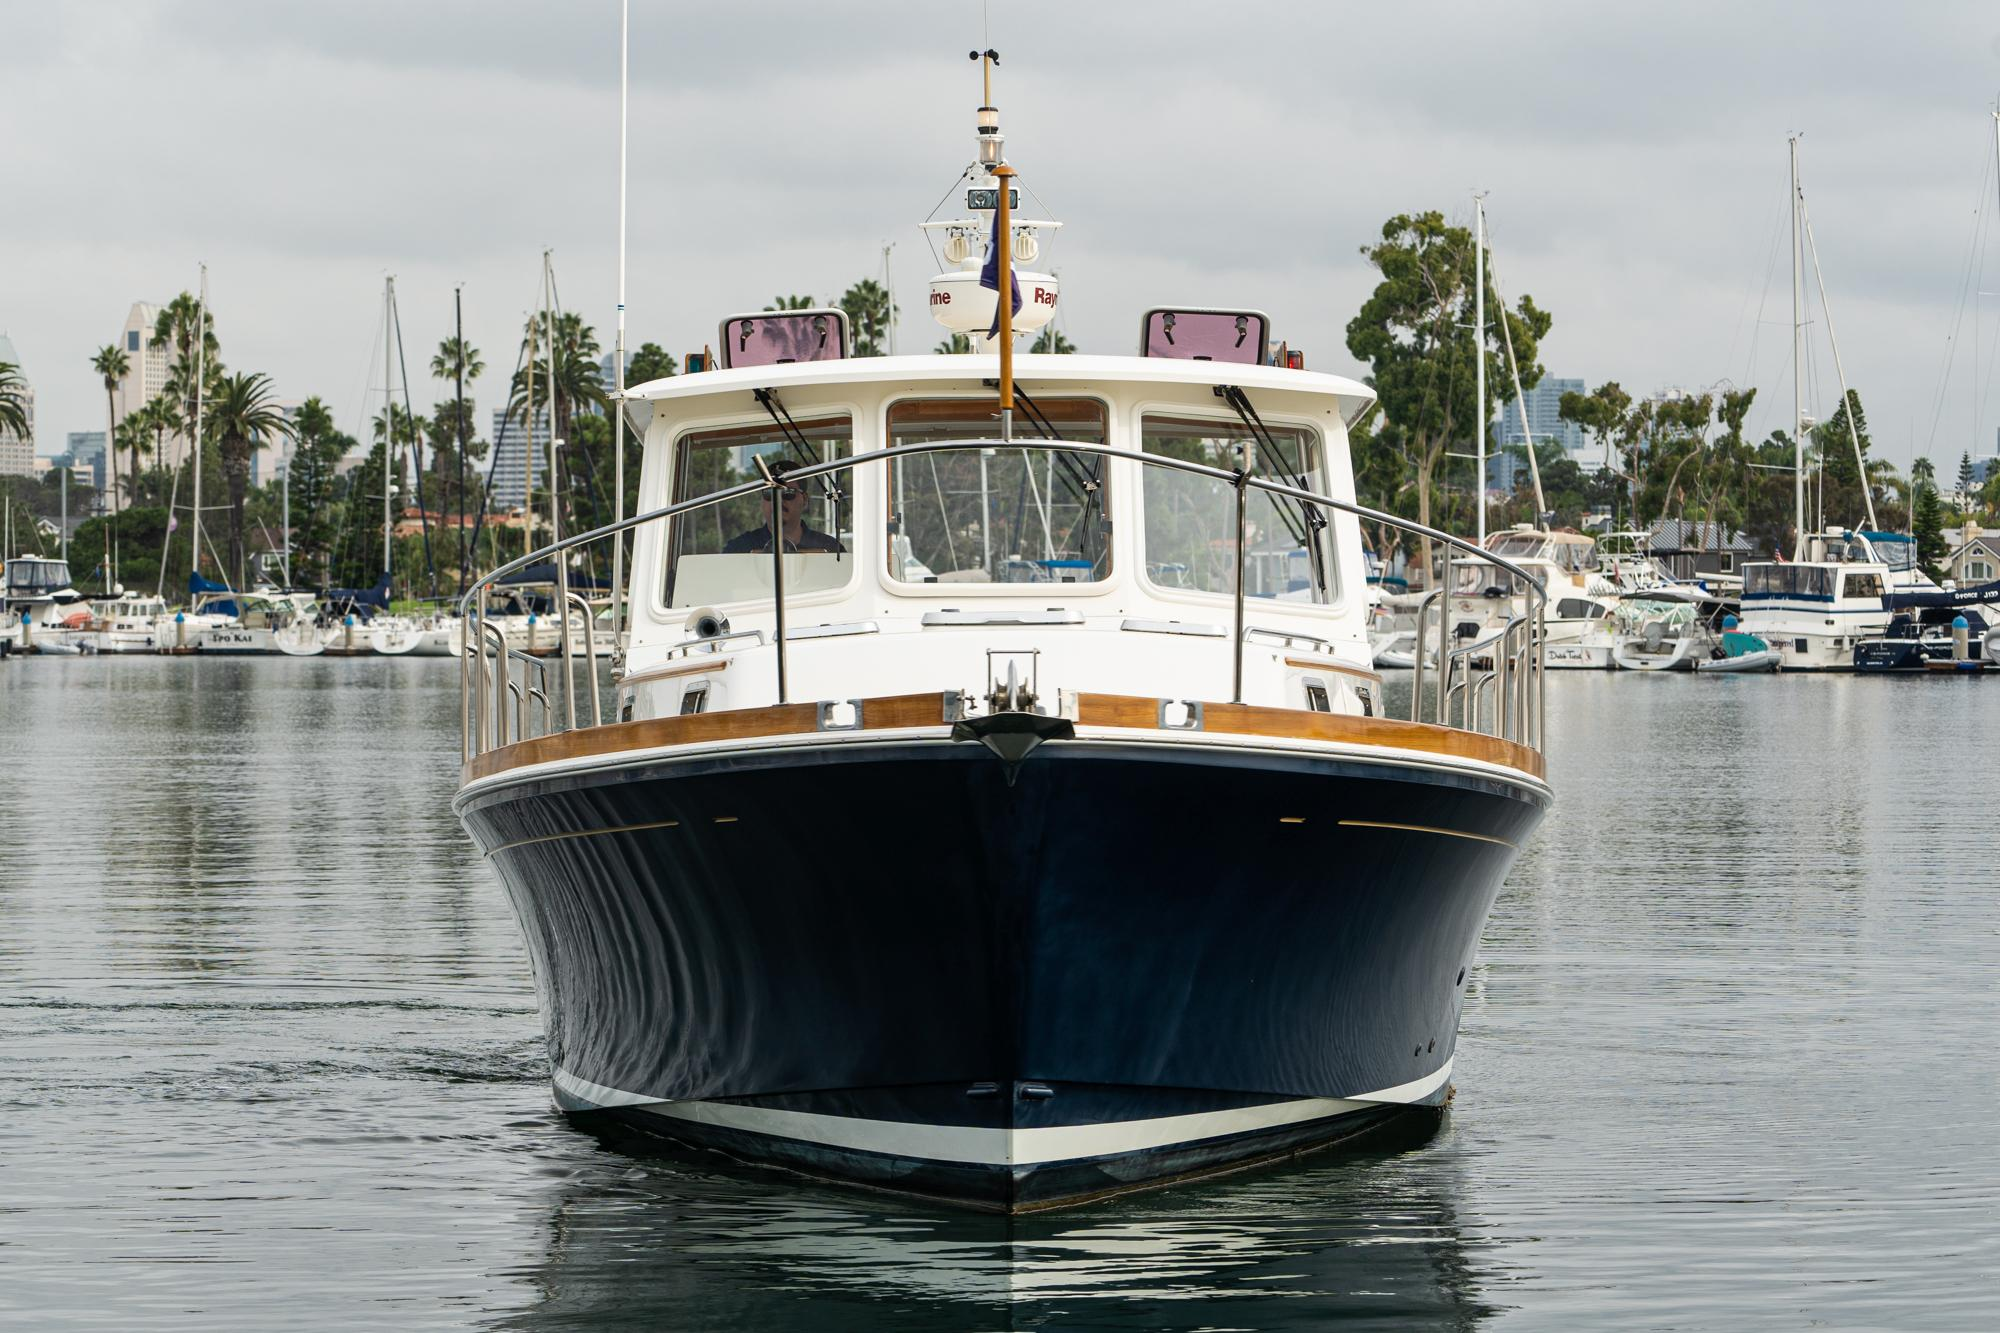 2001 Grand Banks 38 Eastbay HX #TB0105RM inventory image at Sun Country Coastal in San Diego